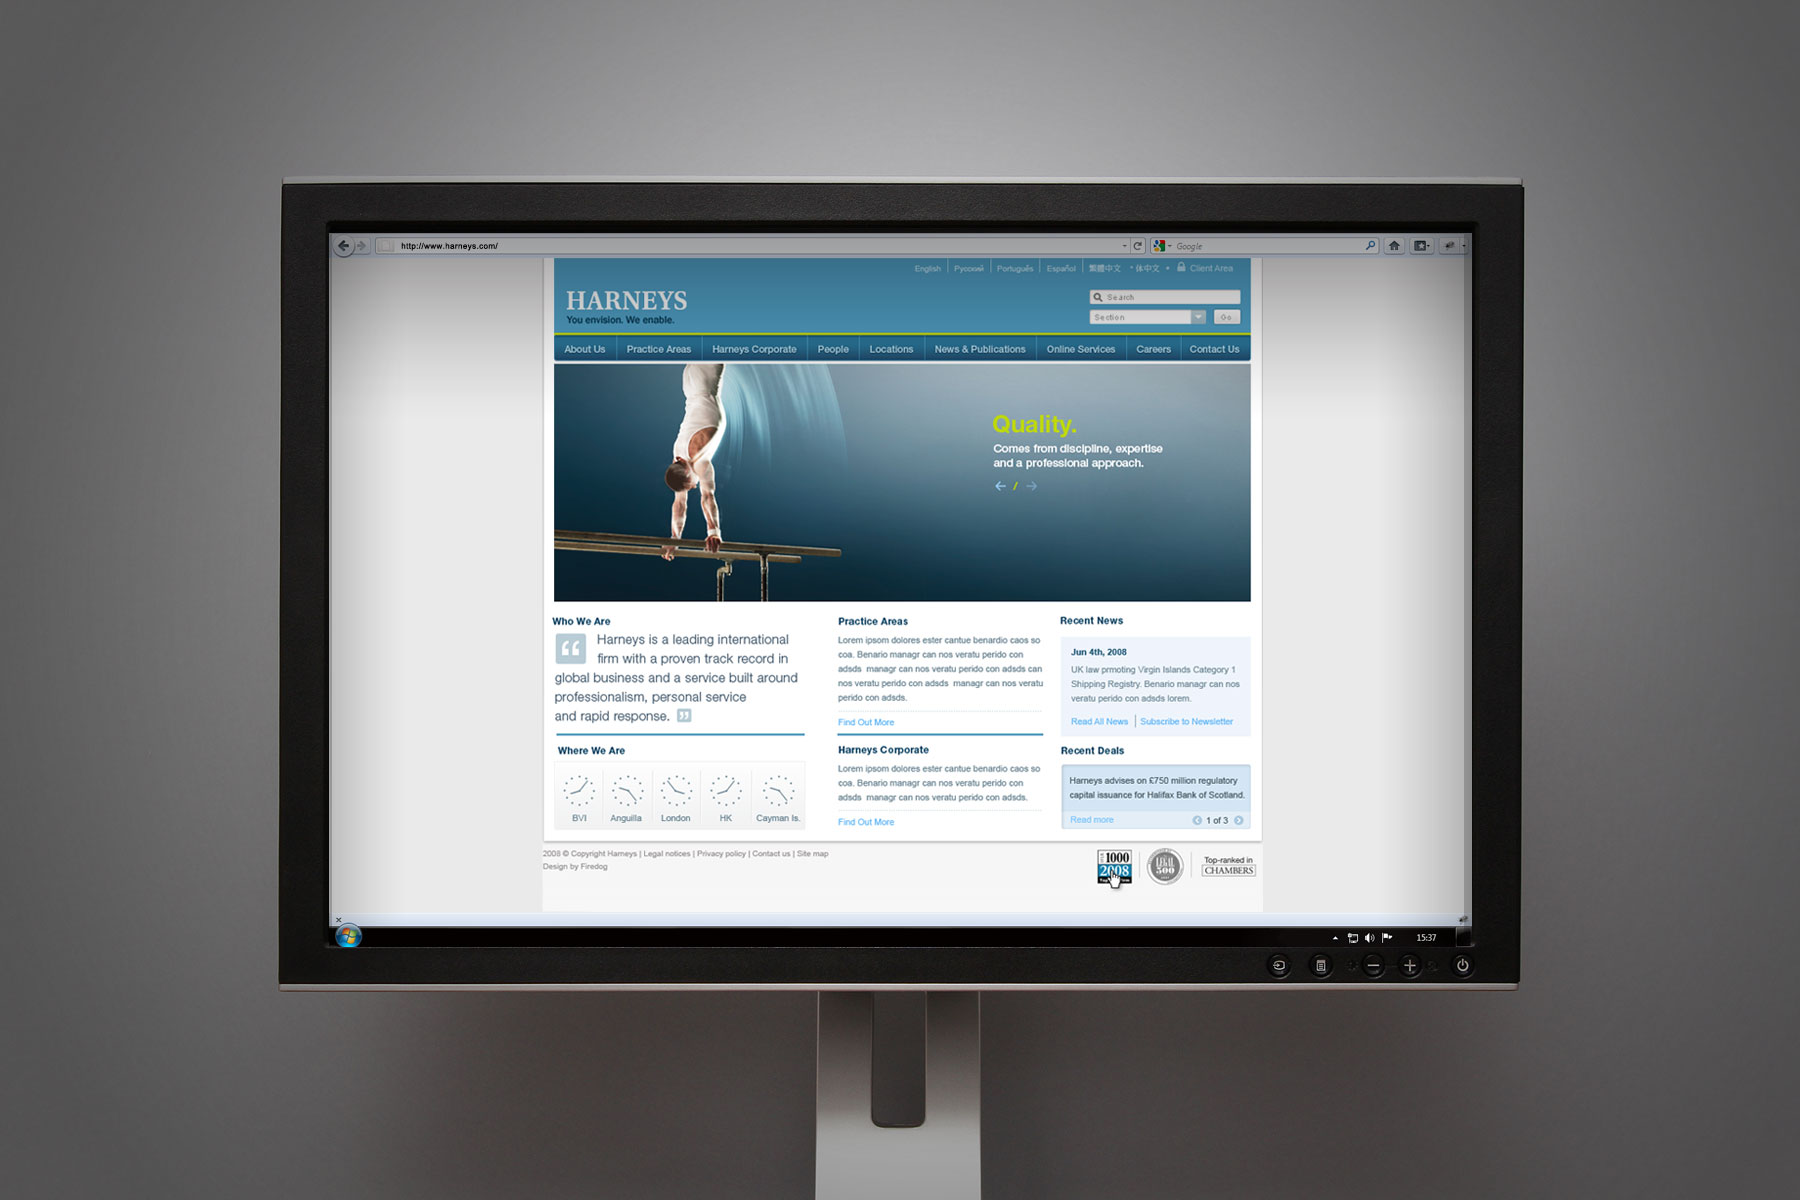 The brand application to web continued the brand communication with the key message delivered across the homepage.